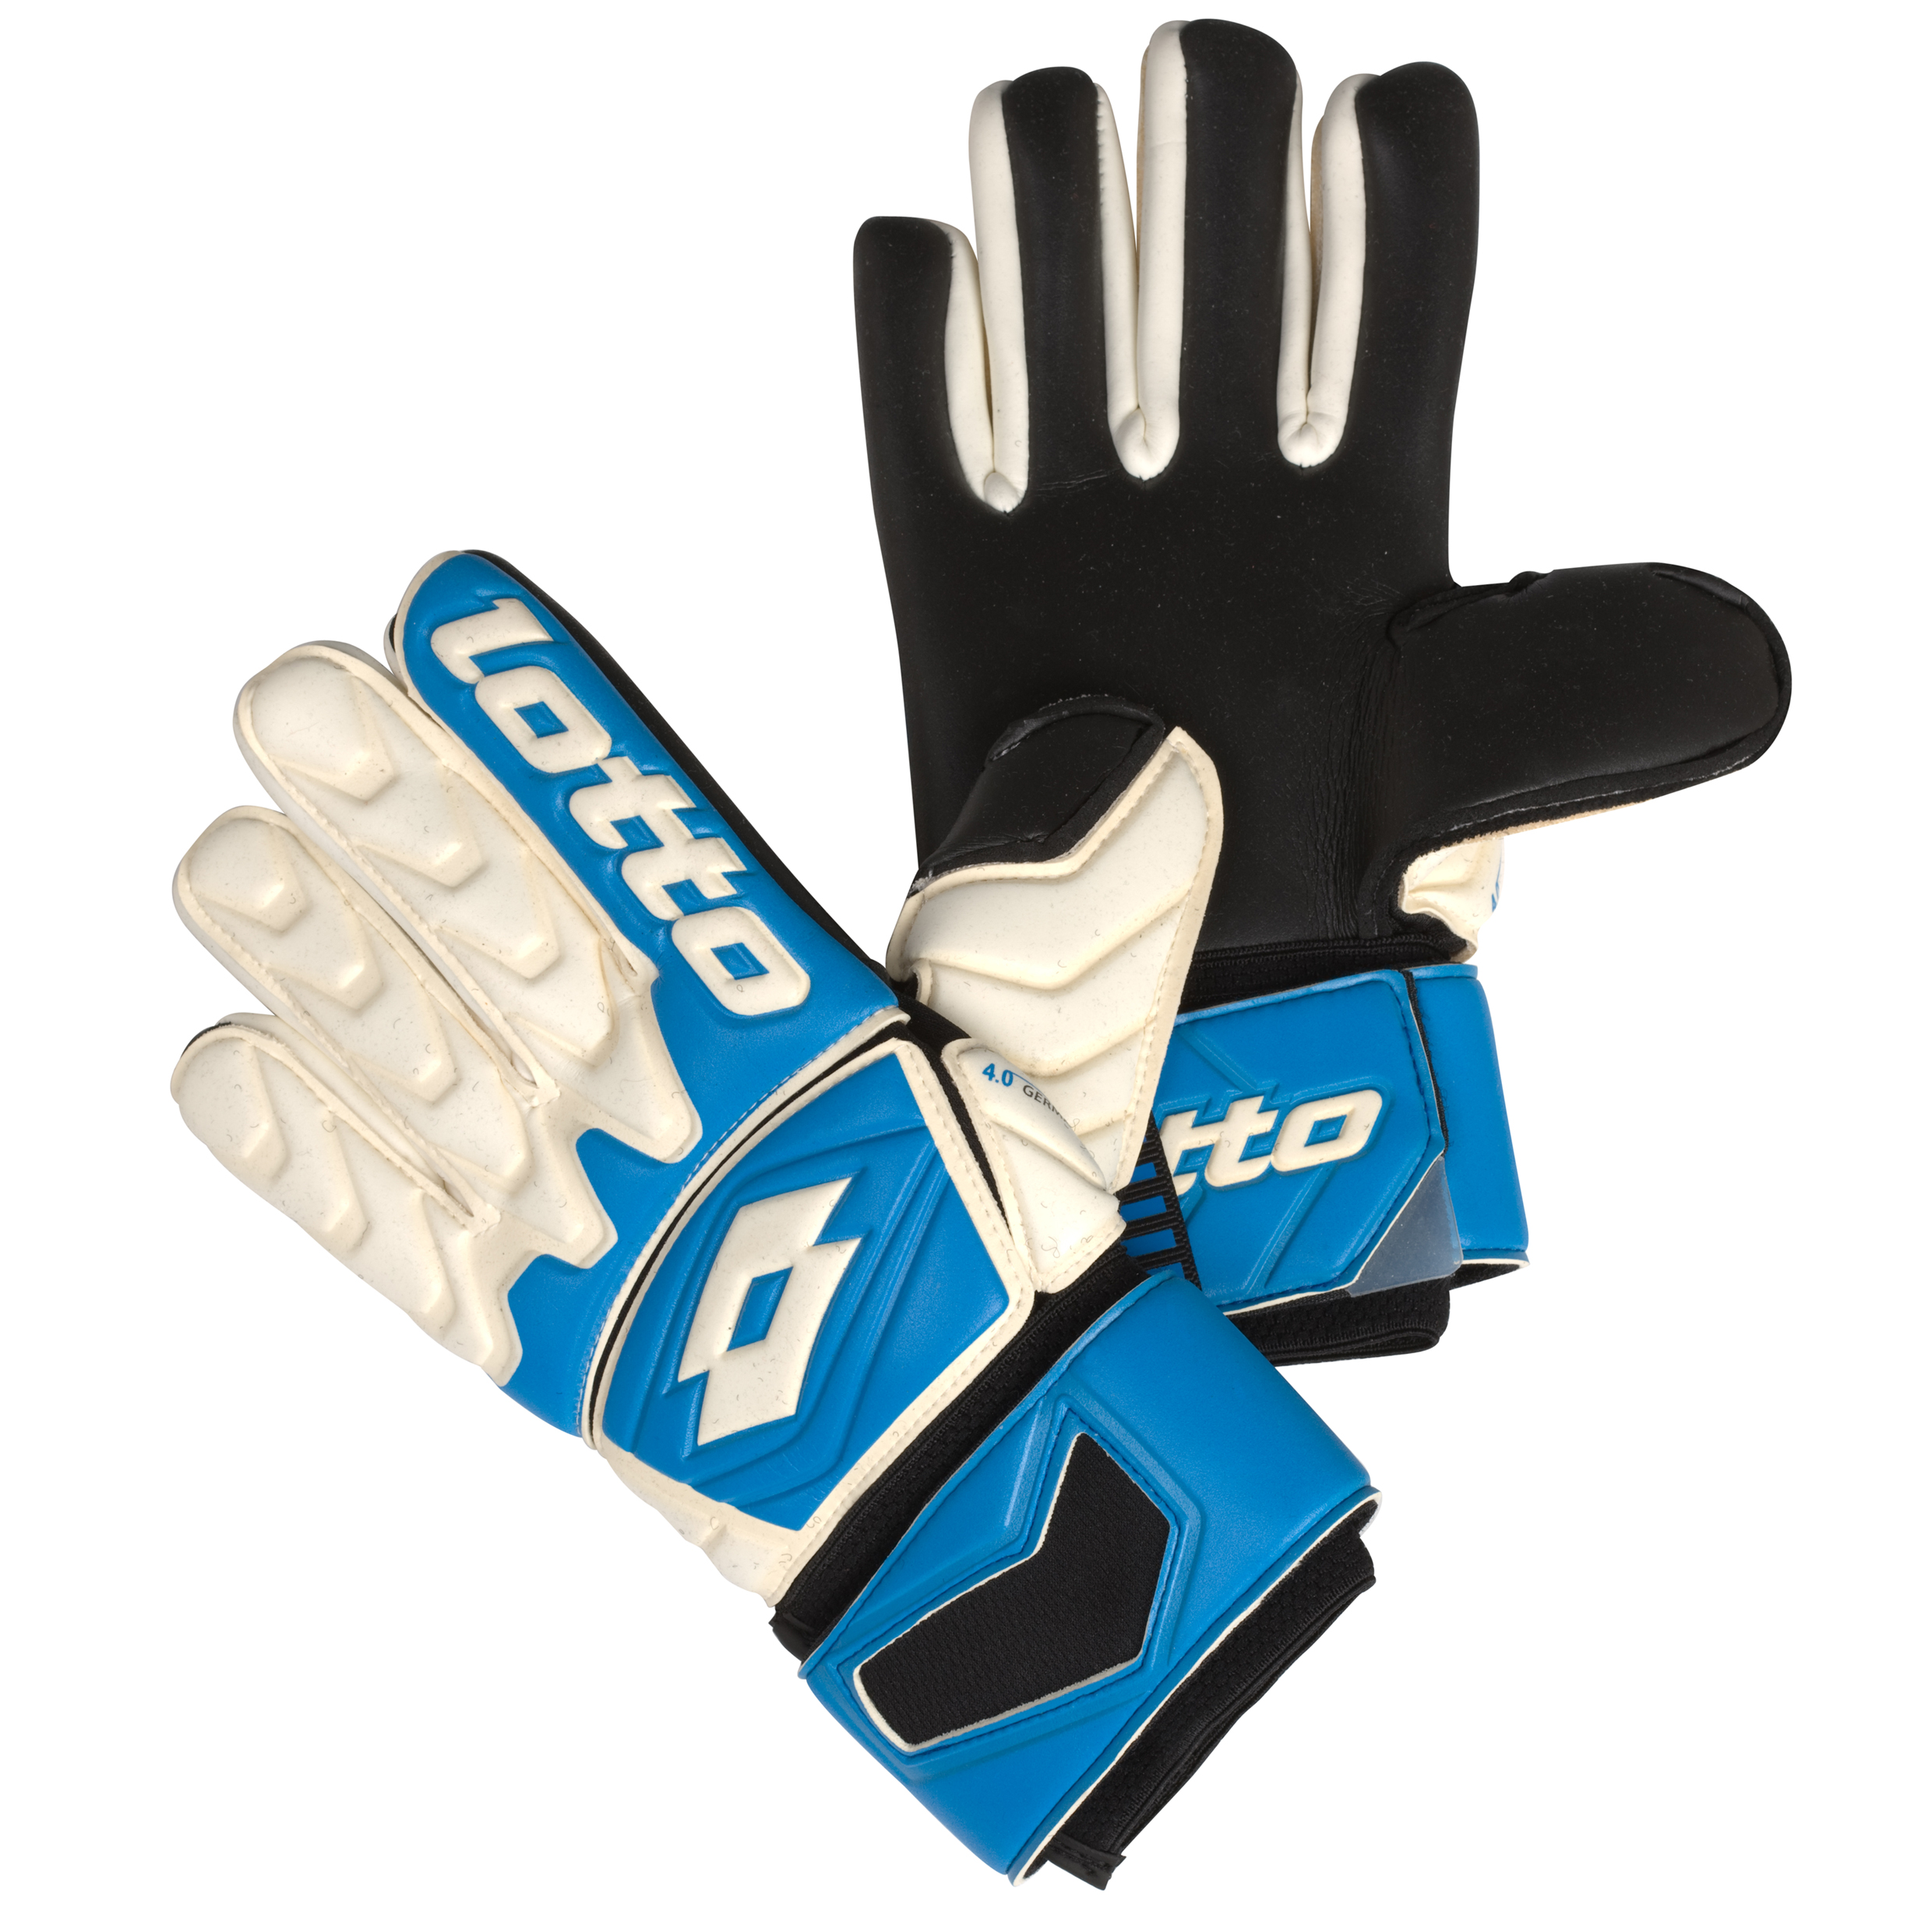 Lotto Gripster GK200 II Goalkeeper Gloves